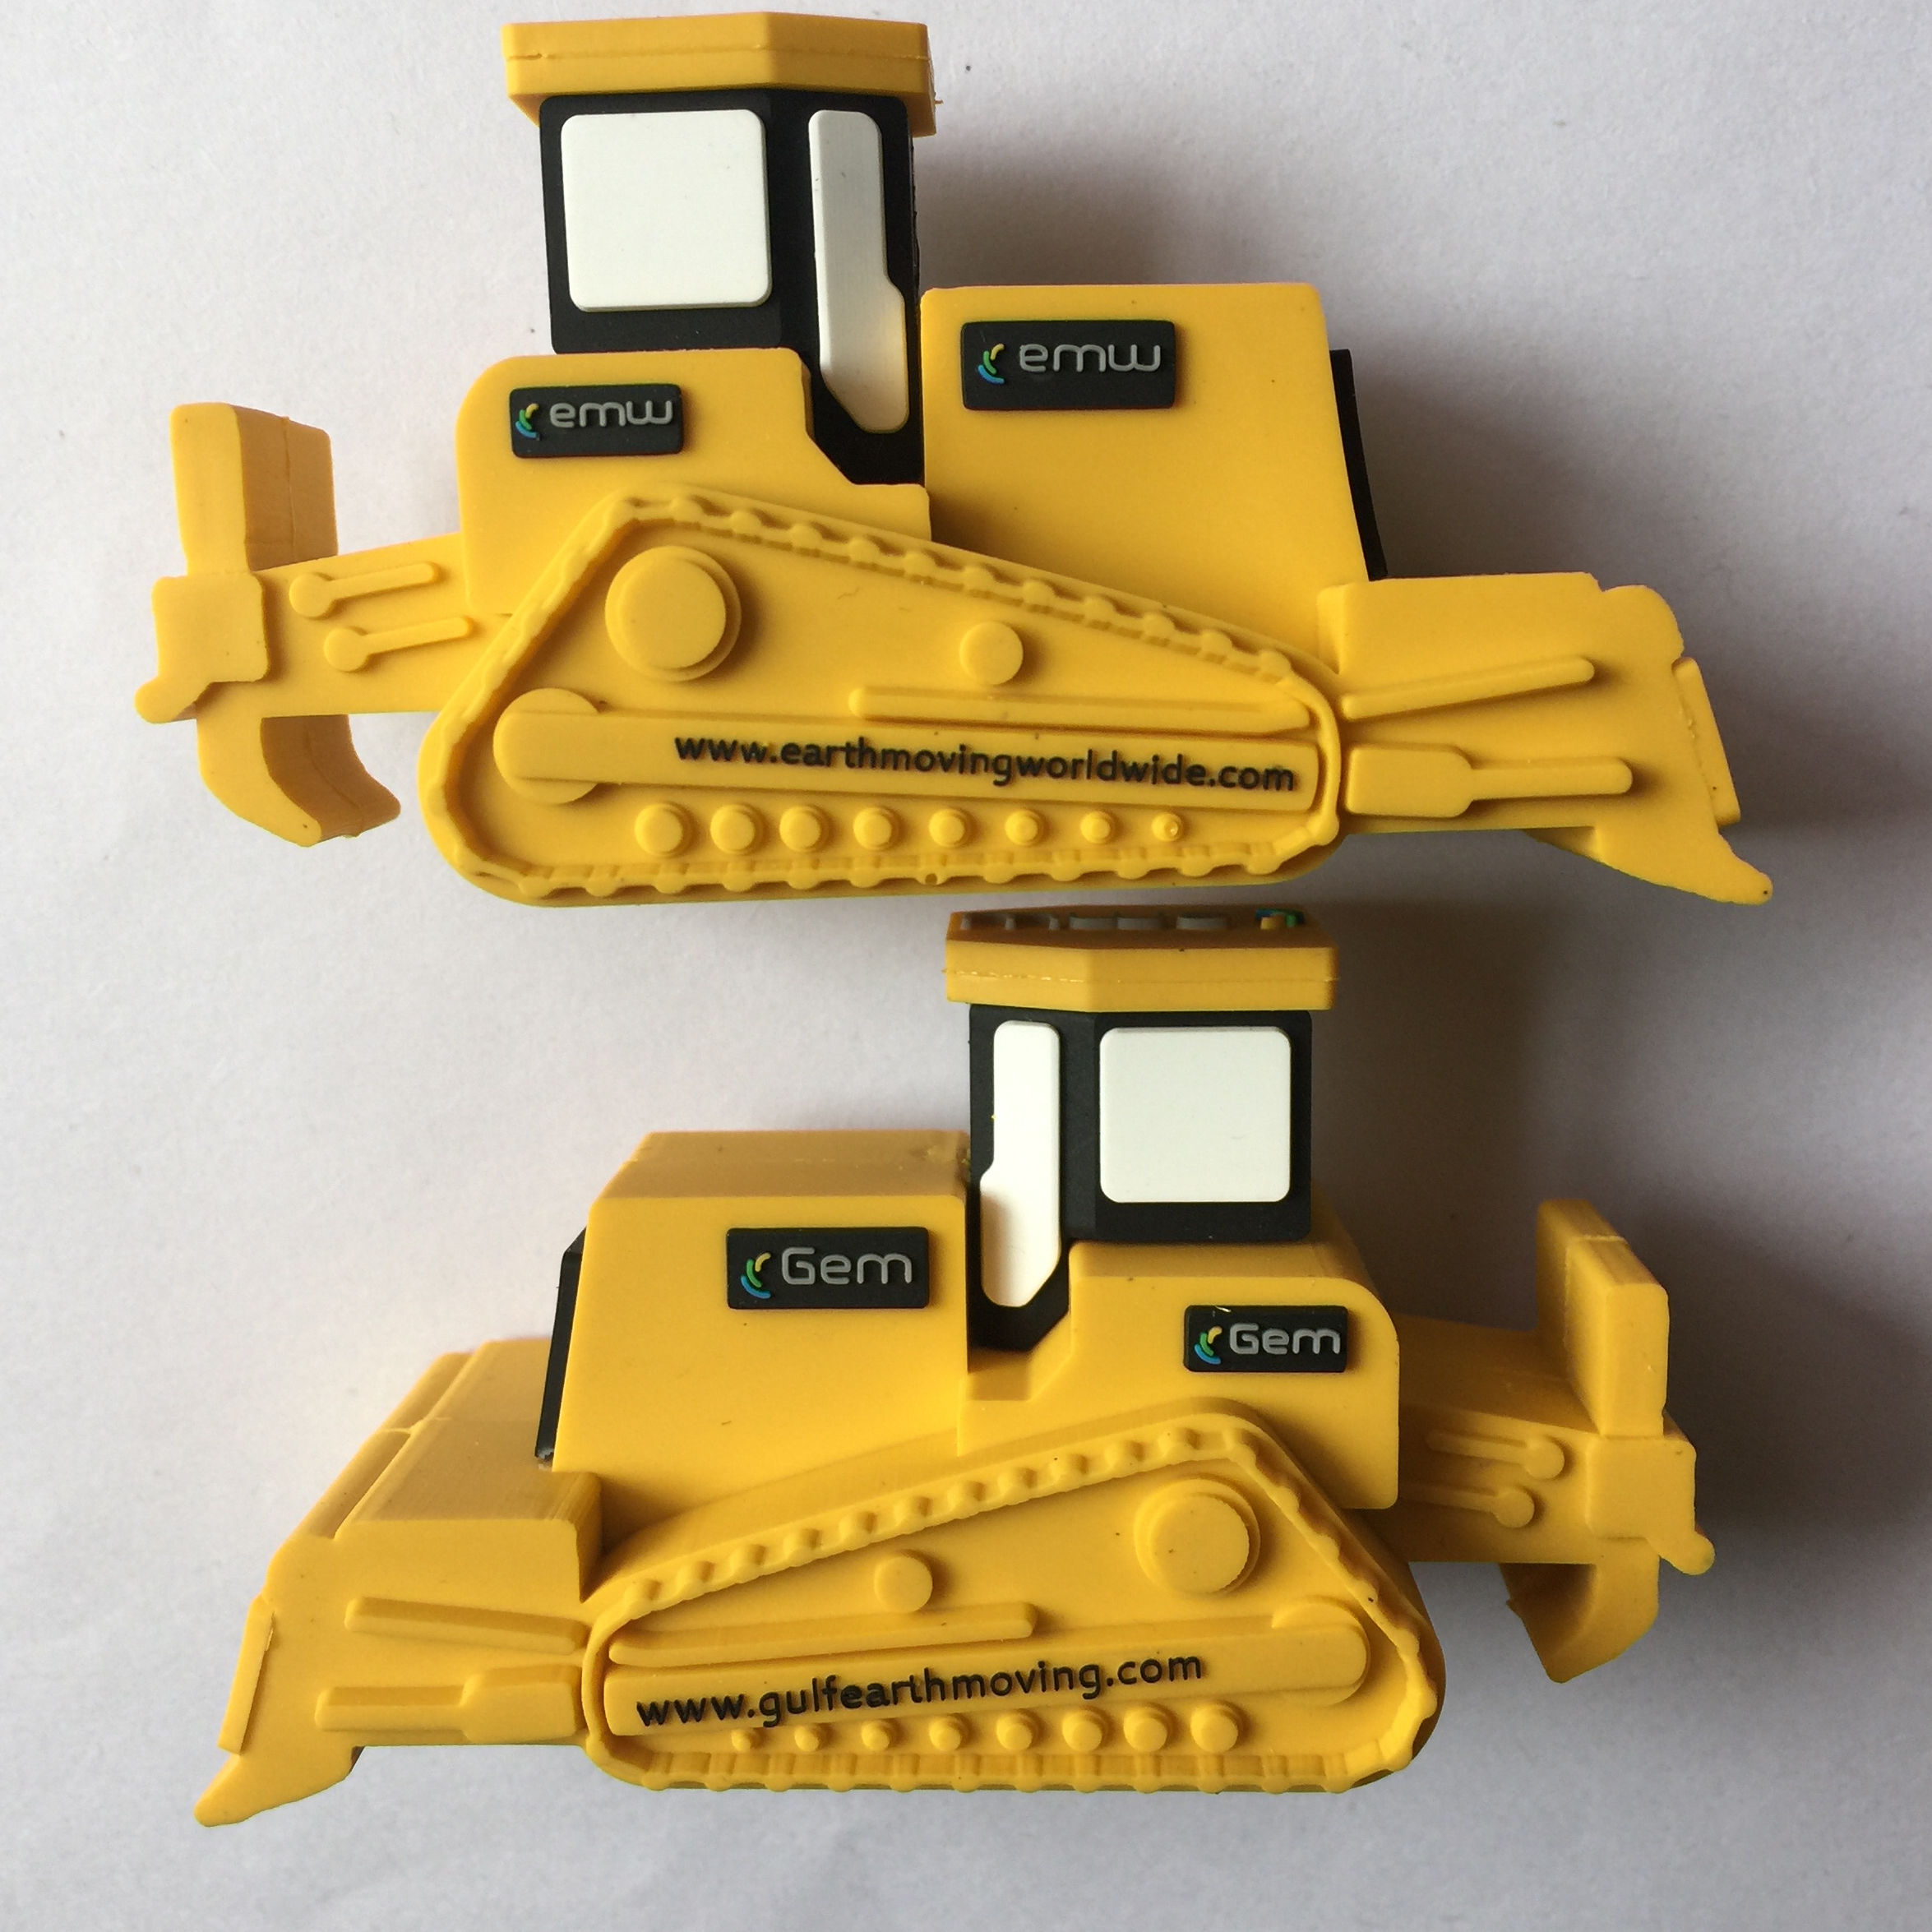 Construction company promotional gifts bulldozer shape usb flash drive Customized bulldozer usb usb flash drive bulldozer